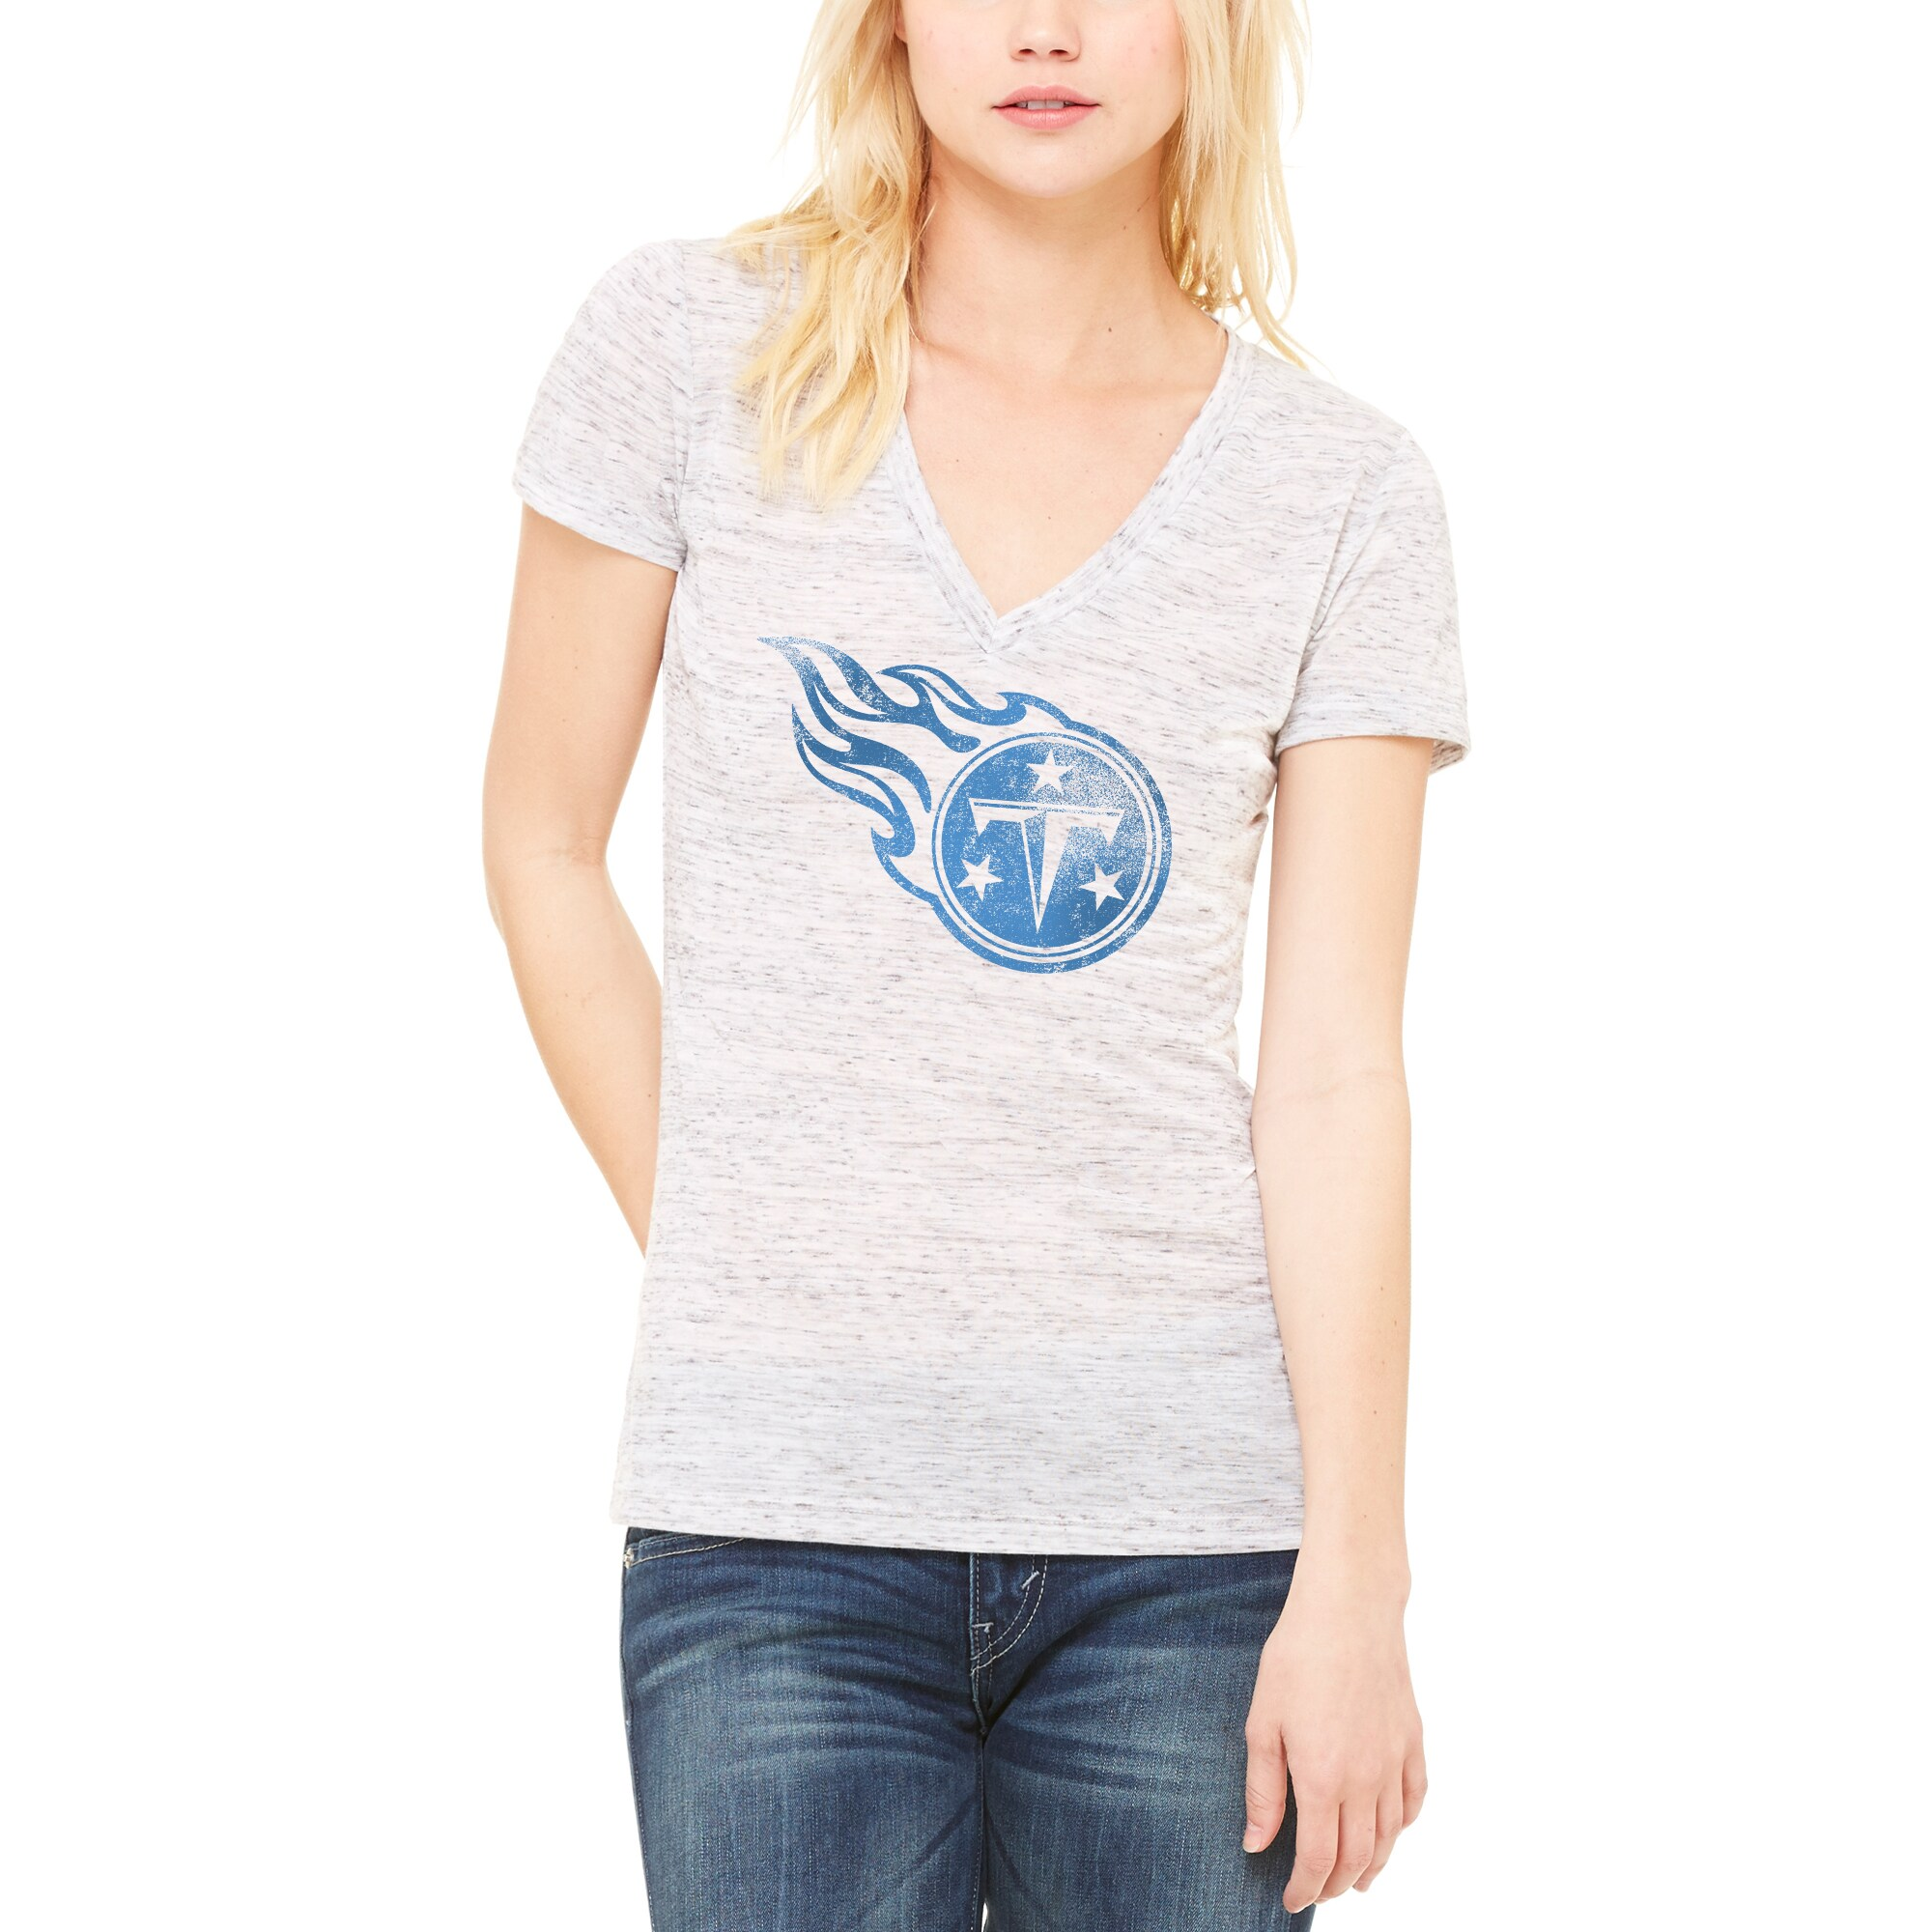 Tennessee Titans Let Loose by RNL Women's Distressed Primary Logo T-Shirt - White Marble